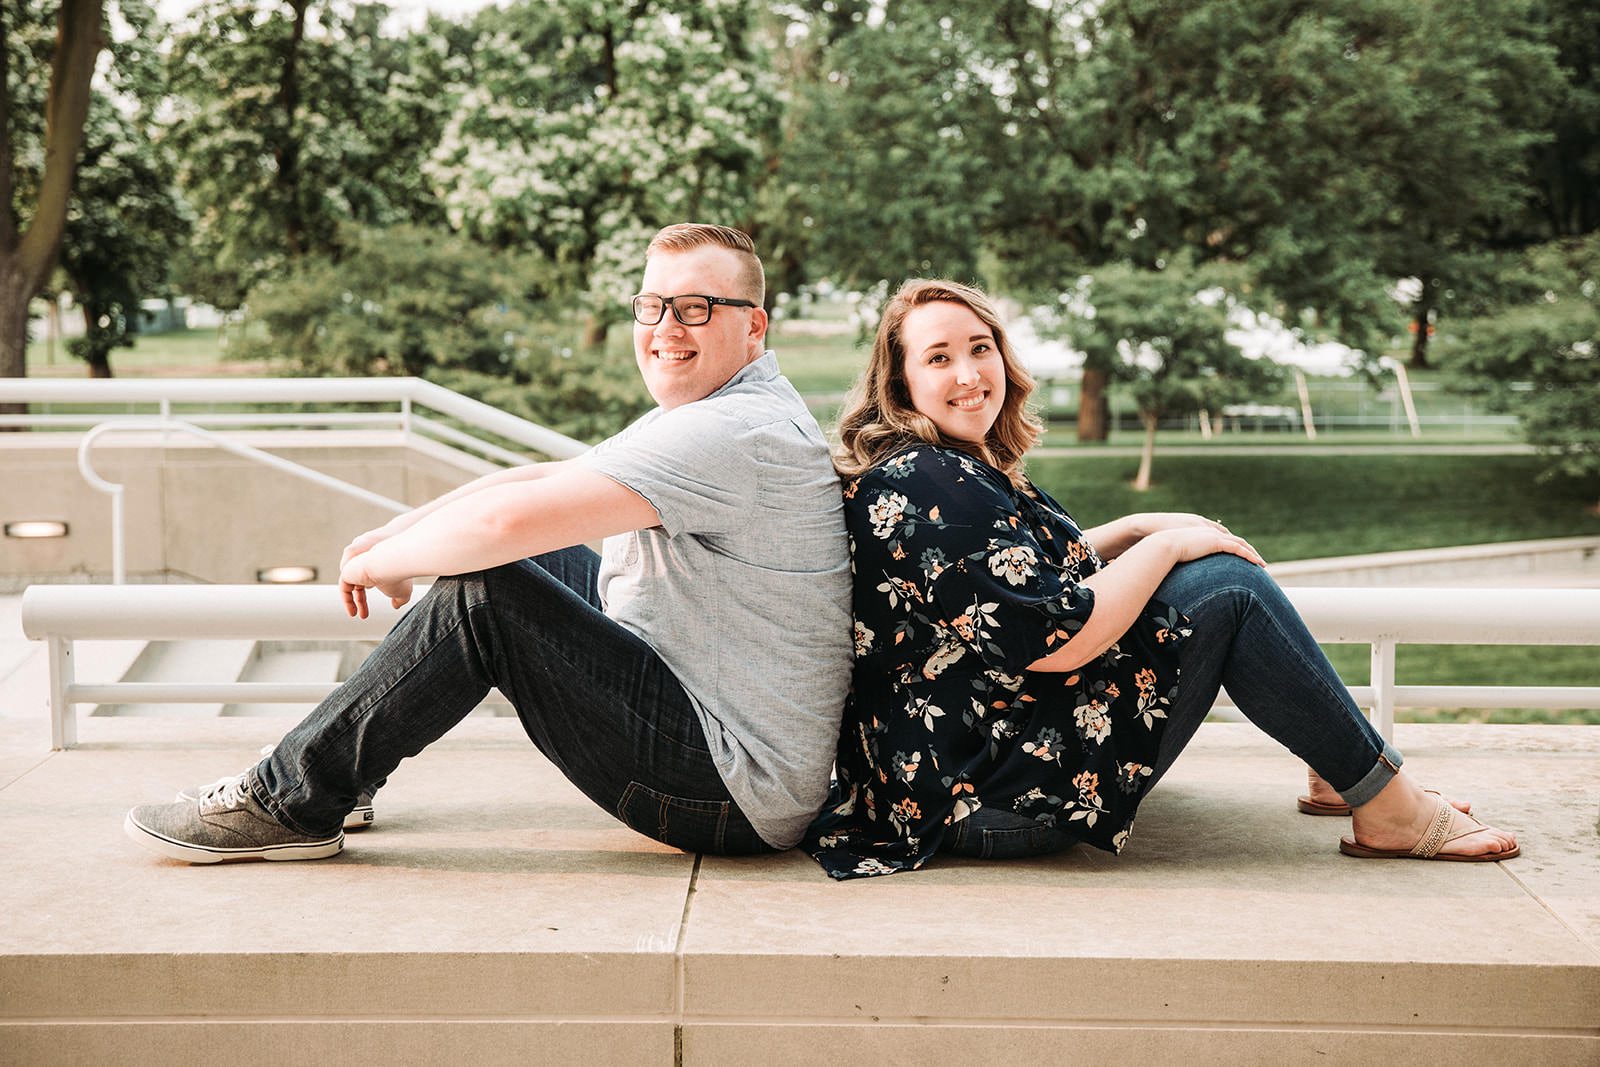 DowntownIndianapolisSpringEngagementPhotos-50.jpg